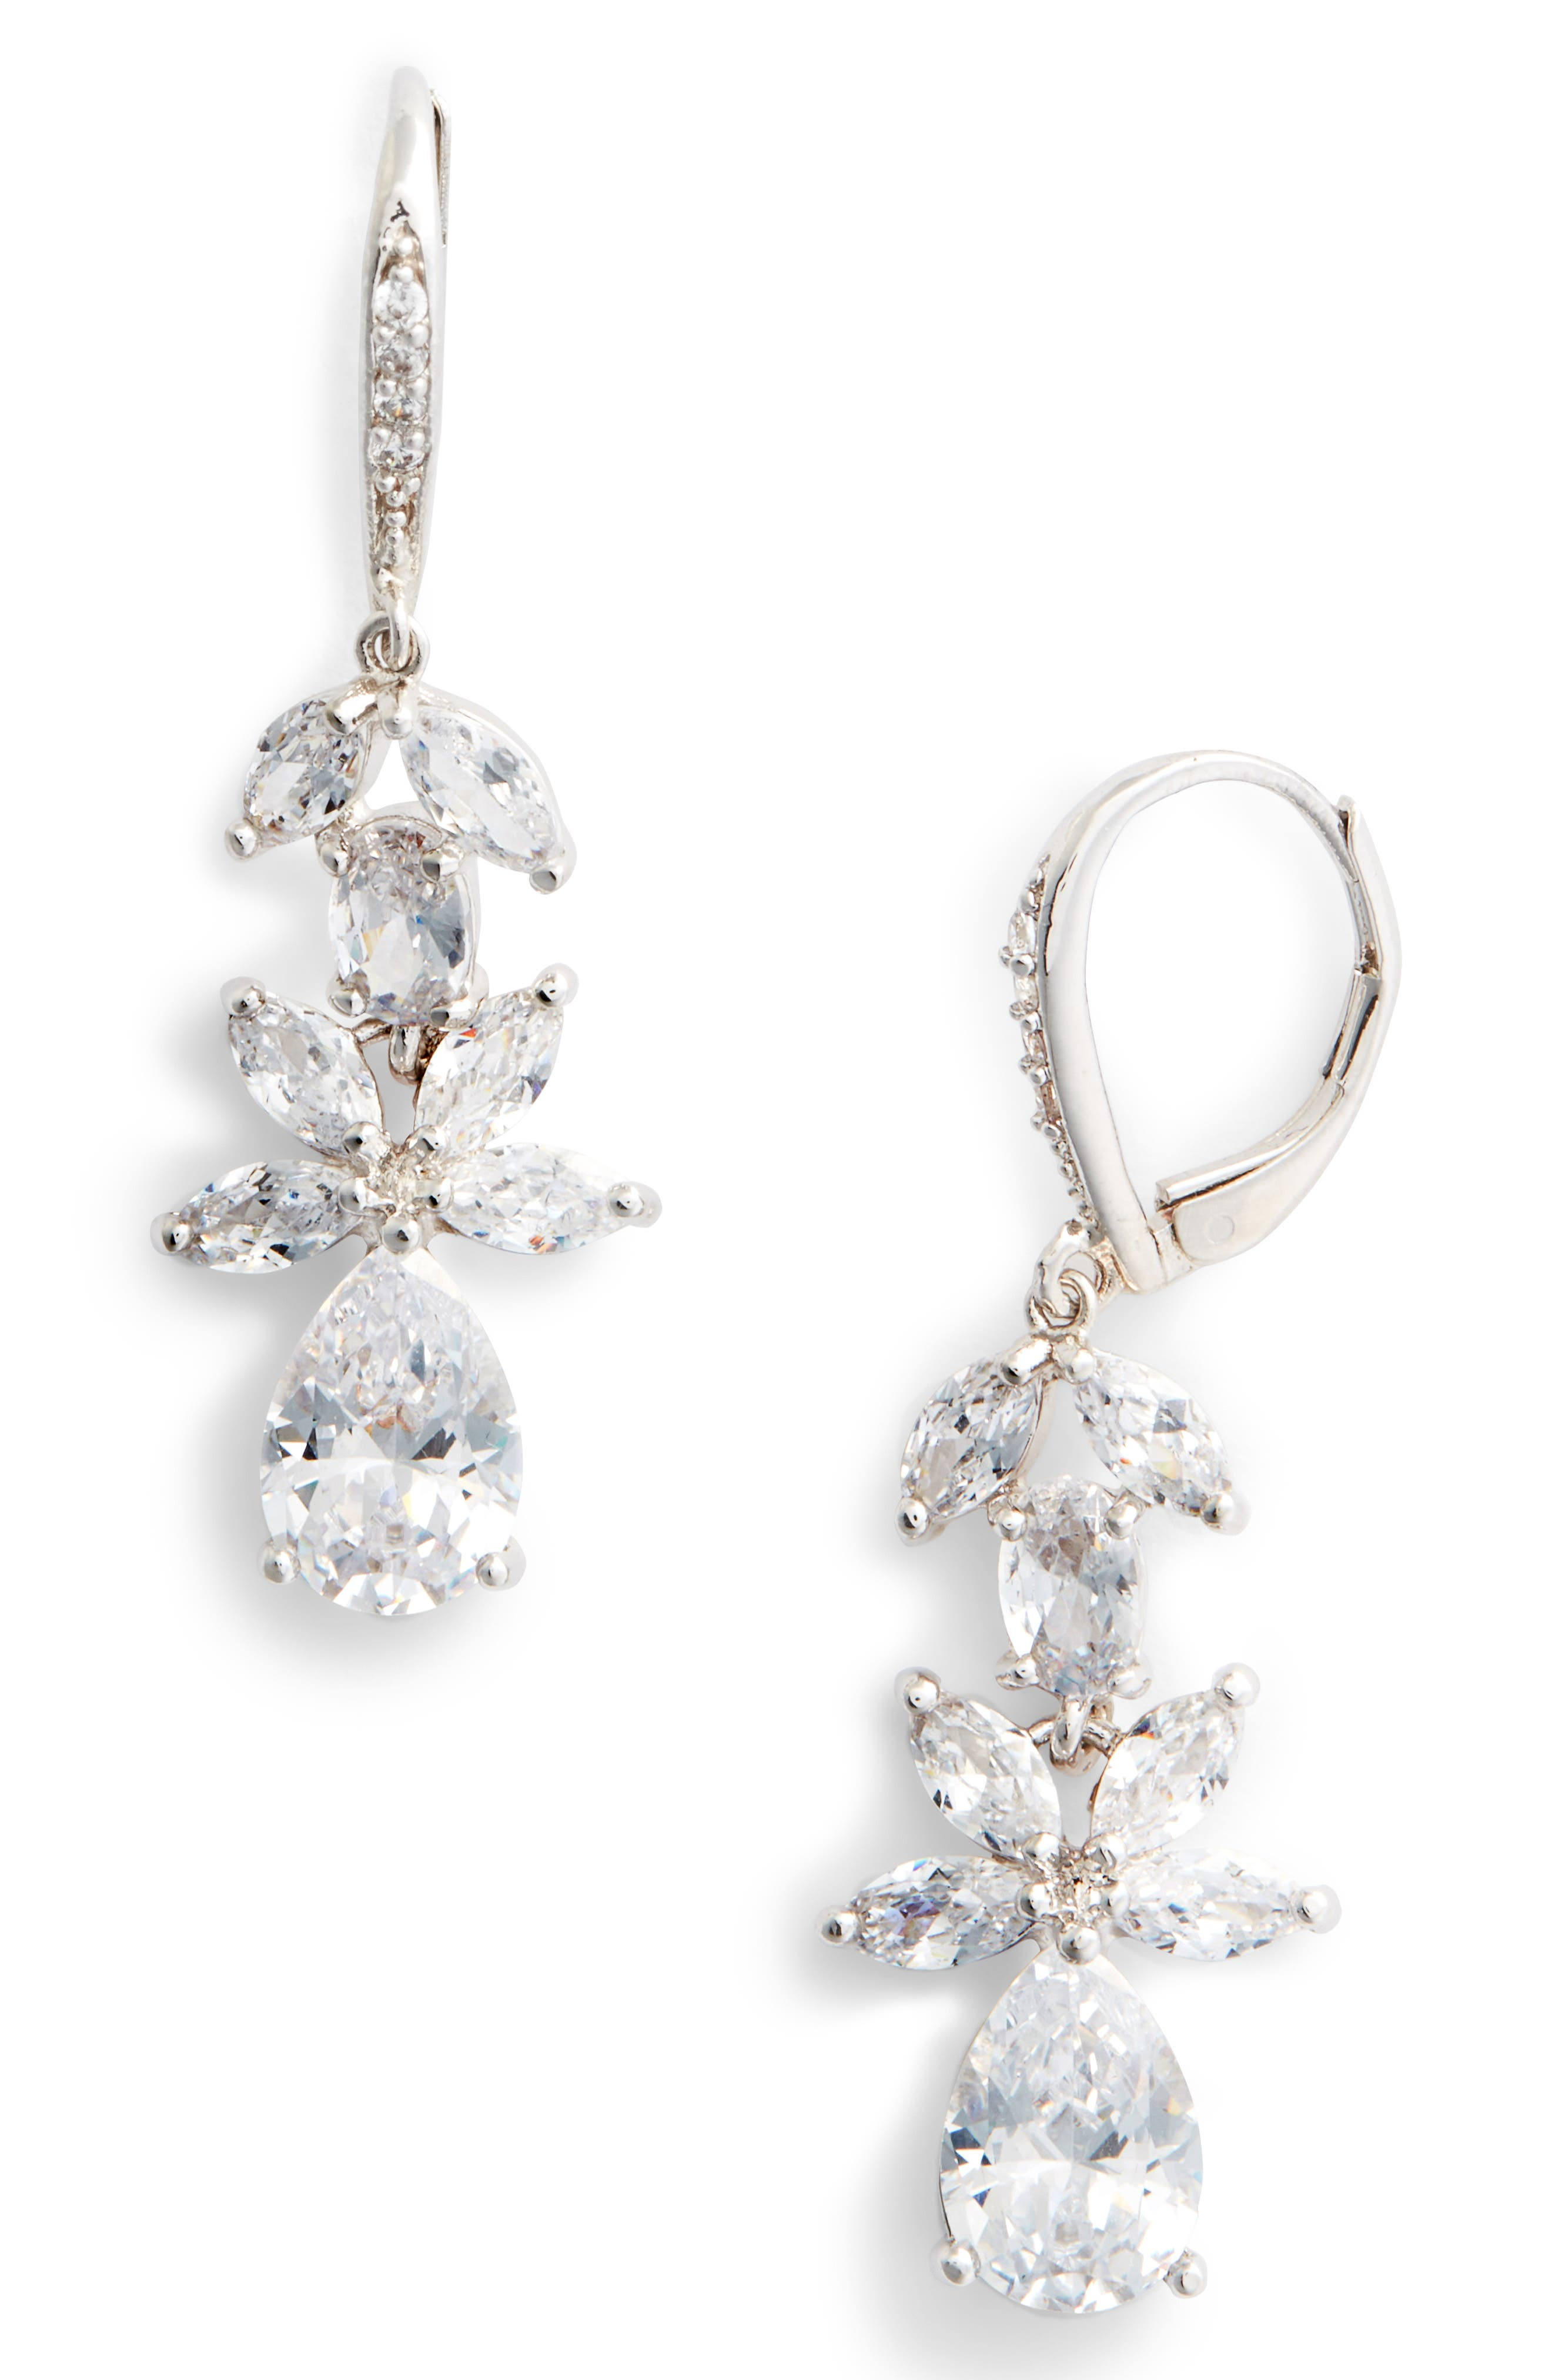 Floral Cubic Zirconia Earrings,                         Main,                         color, White/ Silver